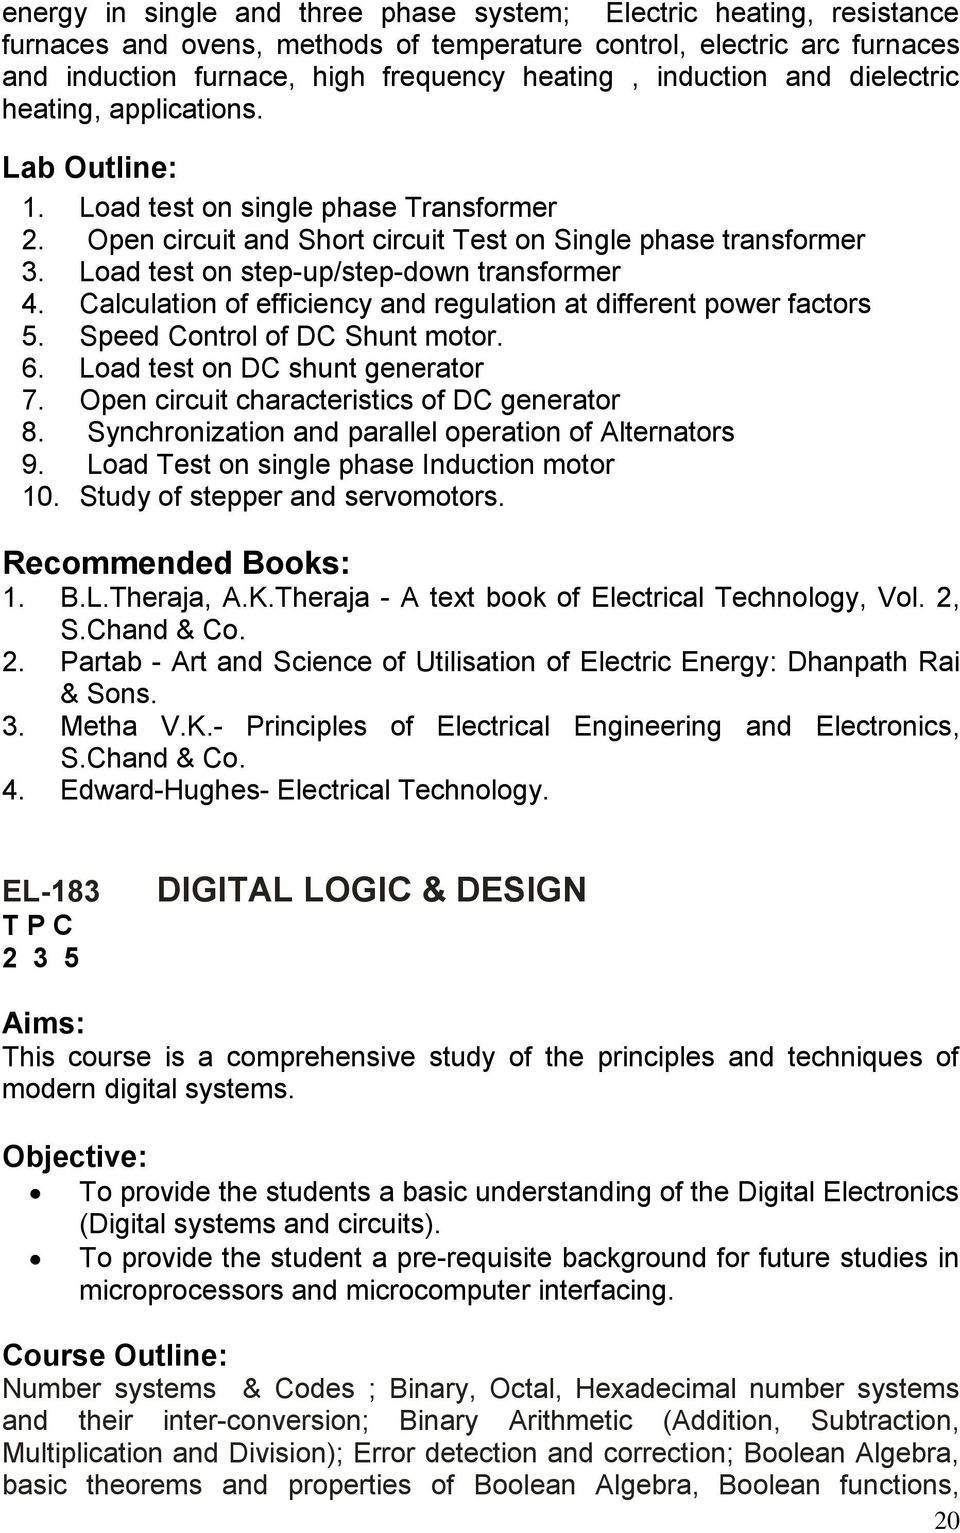 Higher Education Commission Islamabad Pakistan Pdf Electronic Circuits Simple Electronics Electronical Basic Load Test On Step Up Down Transformer 4 Calculation Of Efficiency